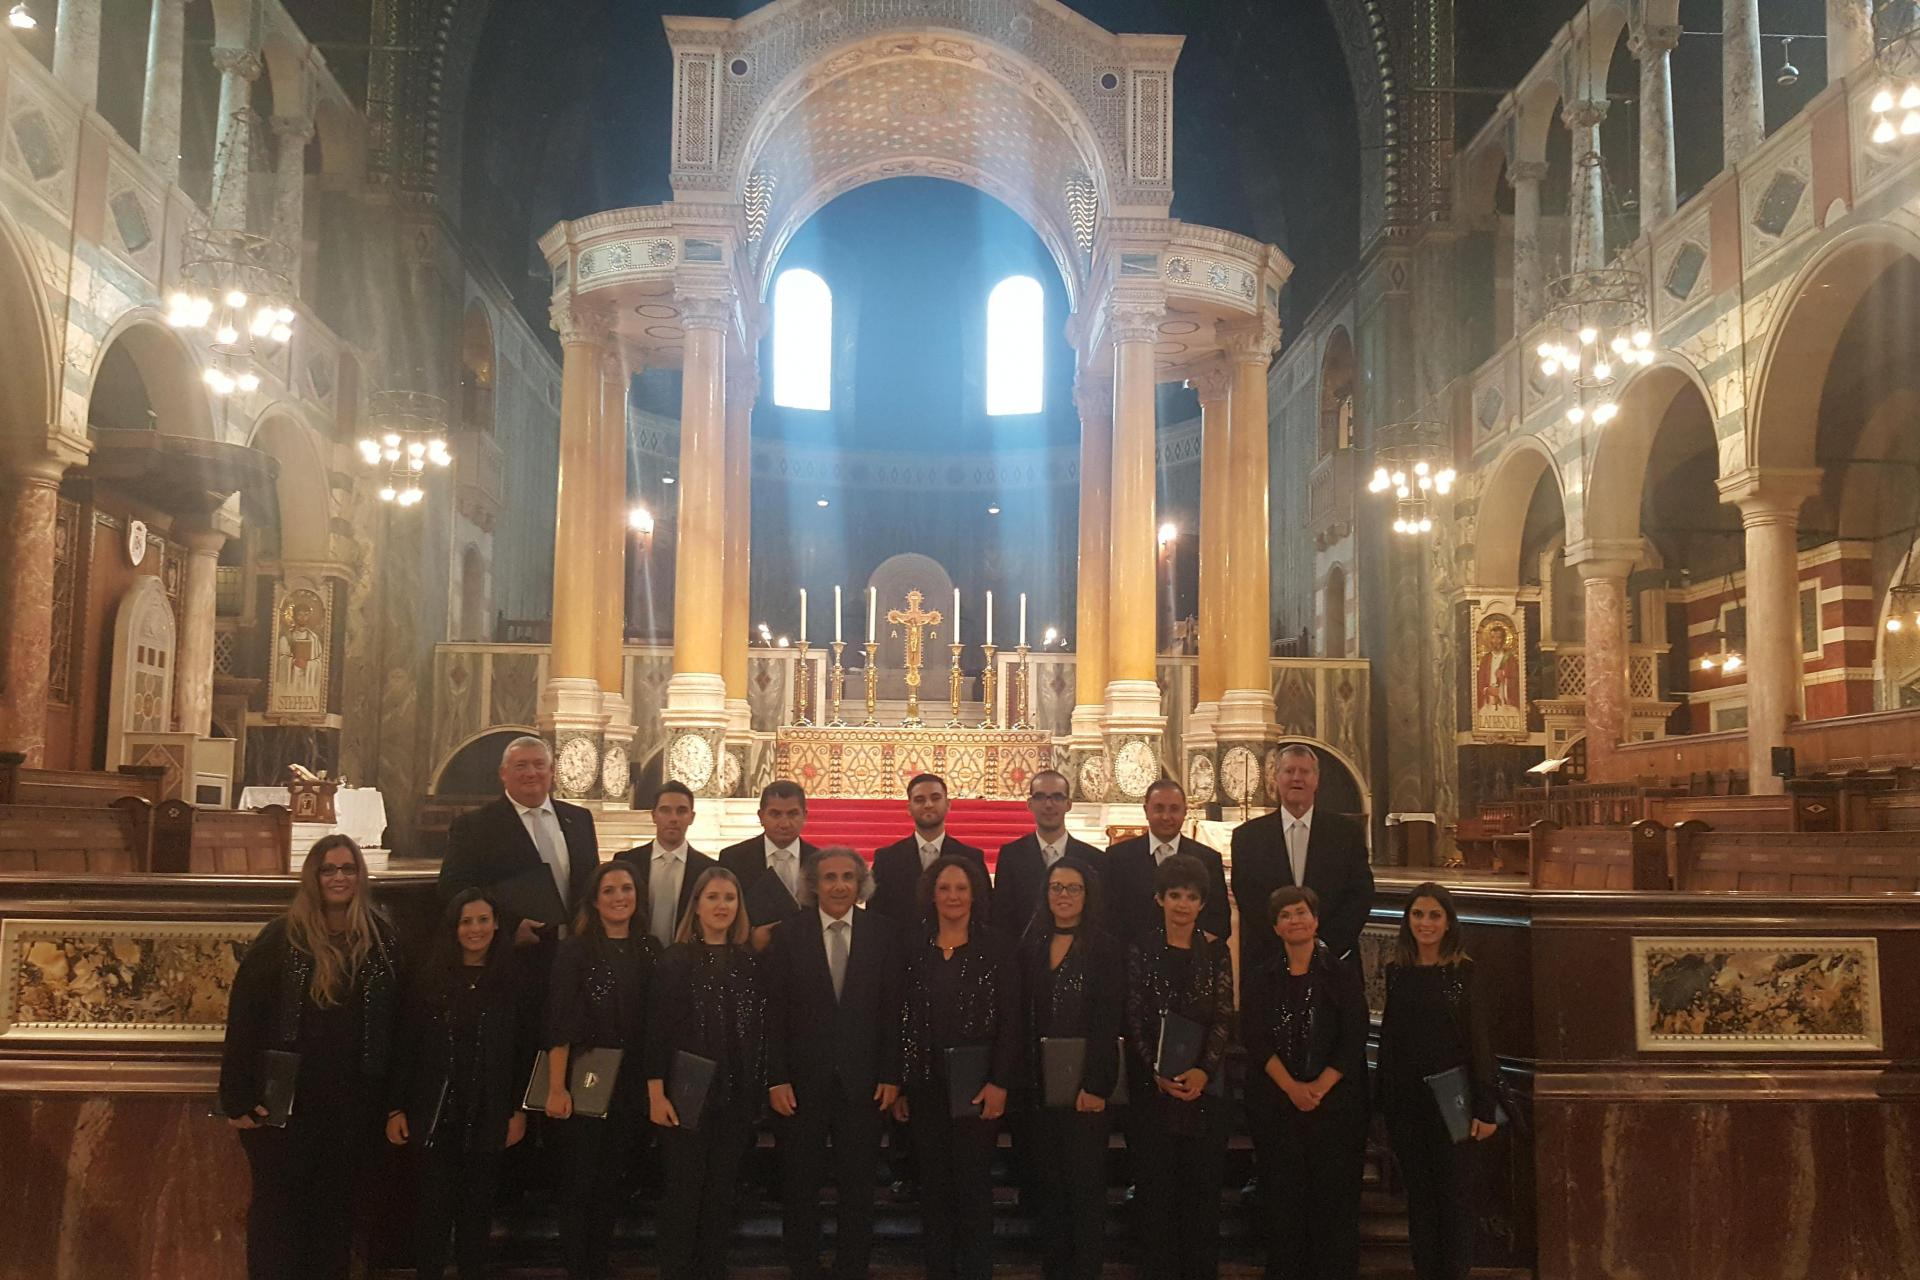 The Gaulitanus Choir played a central role in the Malta Day celebrations at Westminster Hall in September 2018.